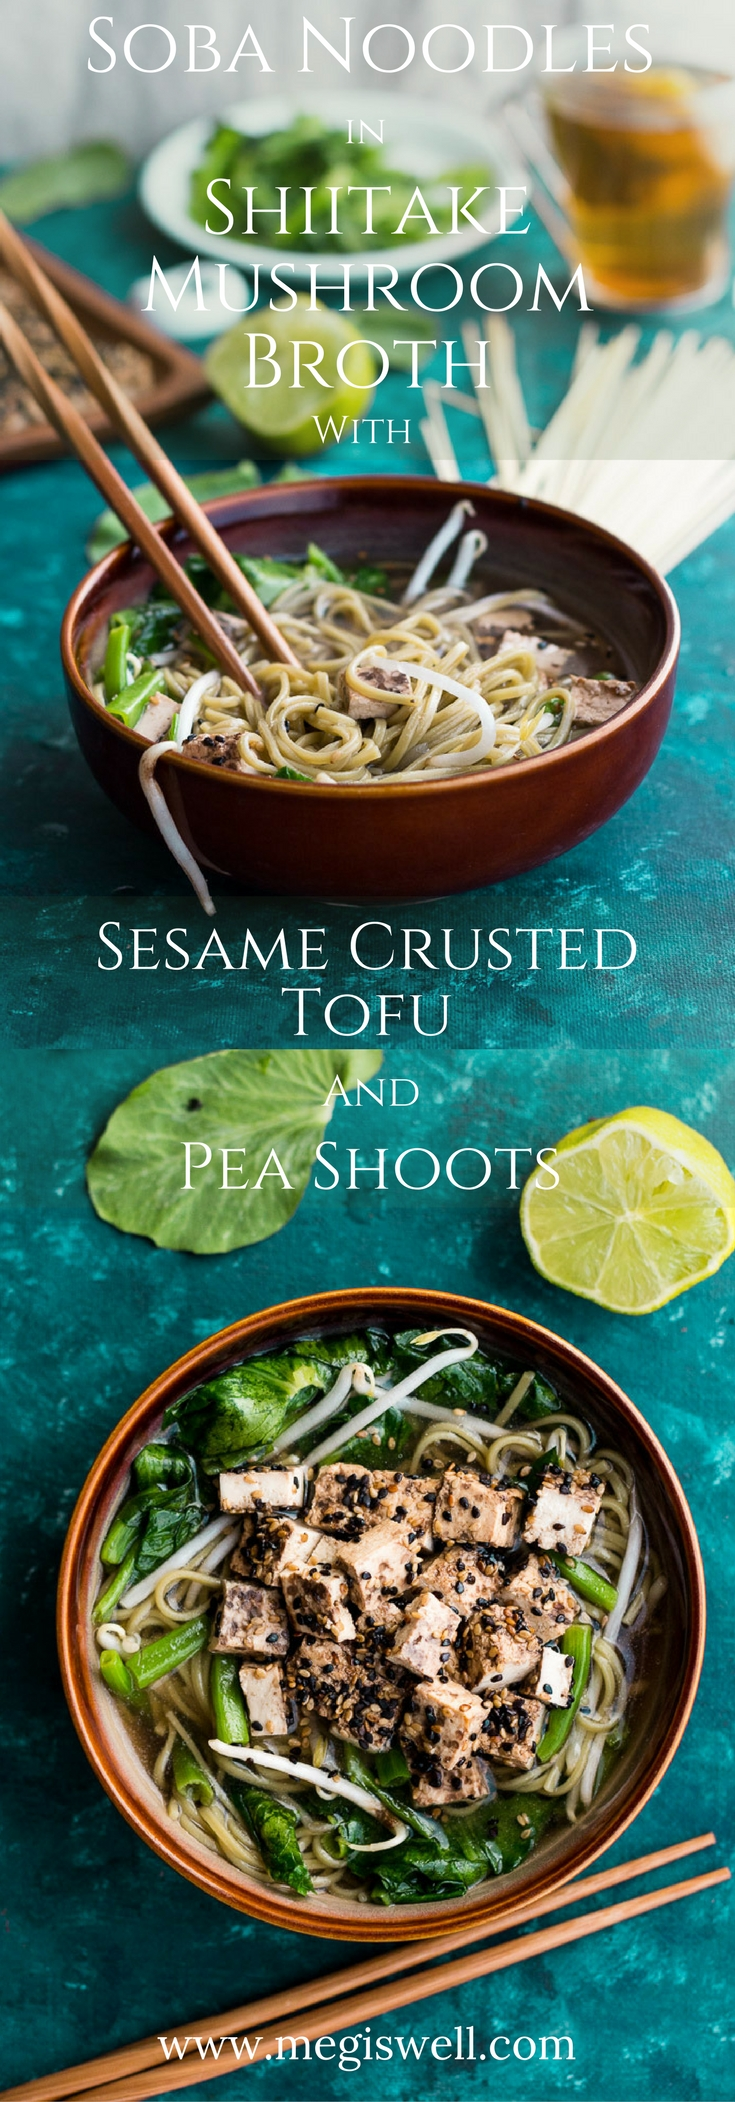 Soba Noodles in Shiitake Mushroom Broth with Sesame Crusted Tofu and Pea Shoots has a simple, fast, and flavorful broth that serves as the base of this delicious, healthy, and vegetarian dish.   www.megiswell.com